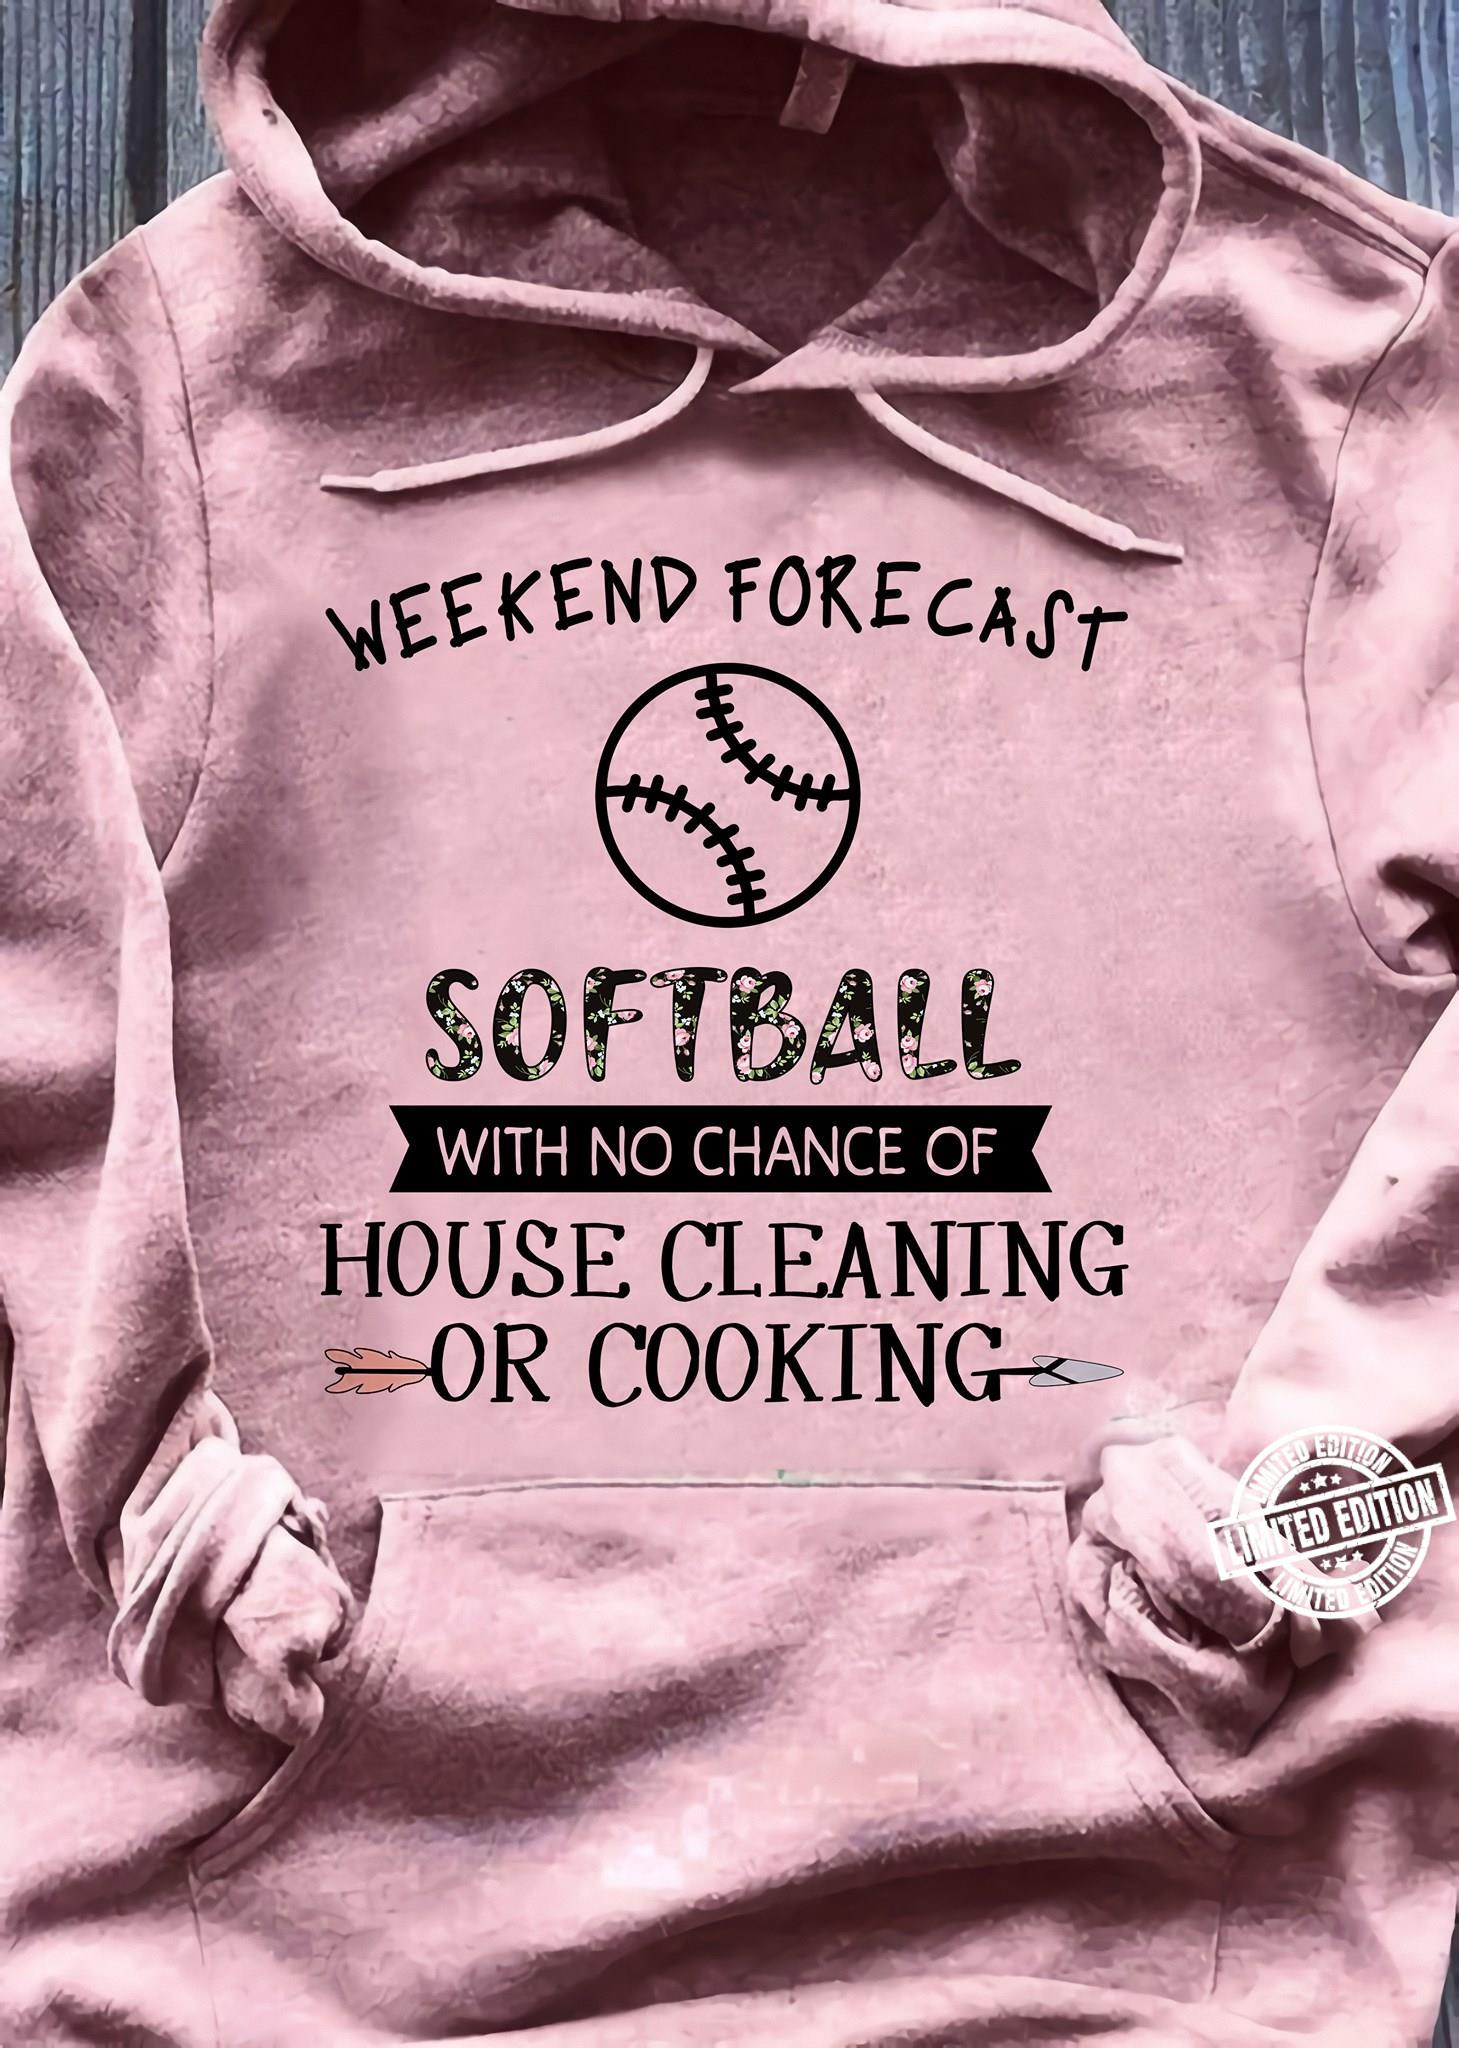 Weekend forecast softball with no chance of house cleaning shirt